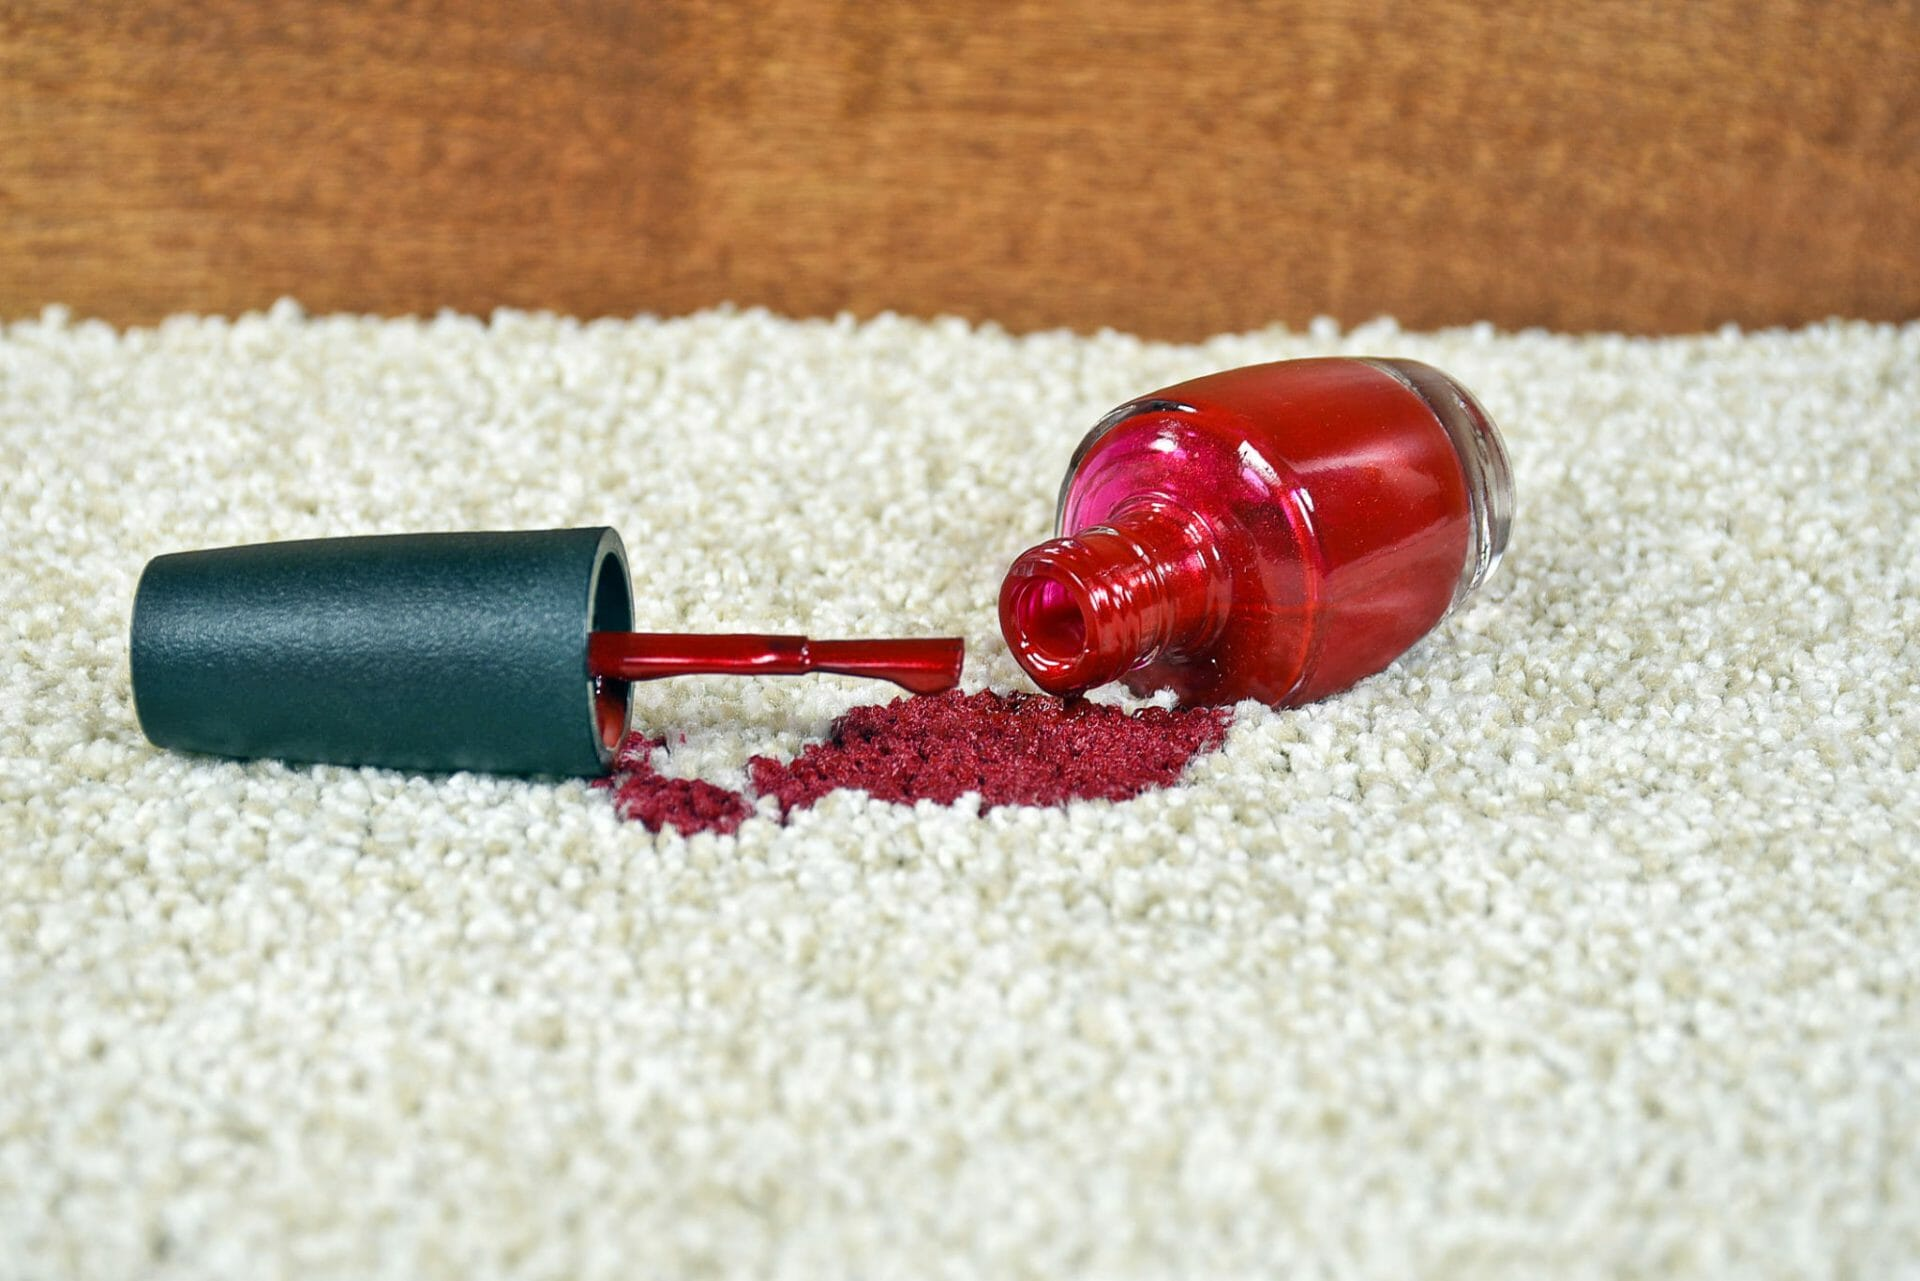 How to get nail polish out of clothes without acetone